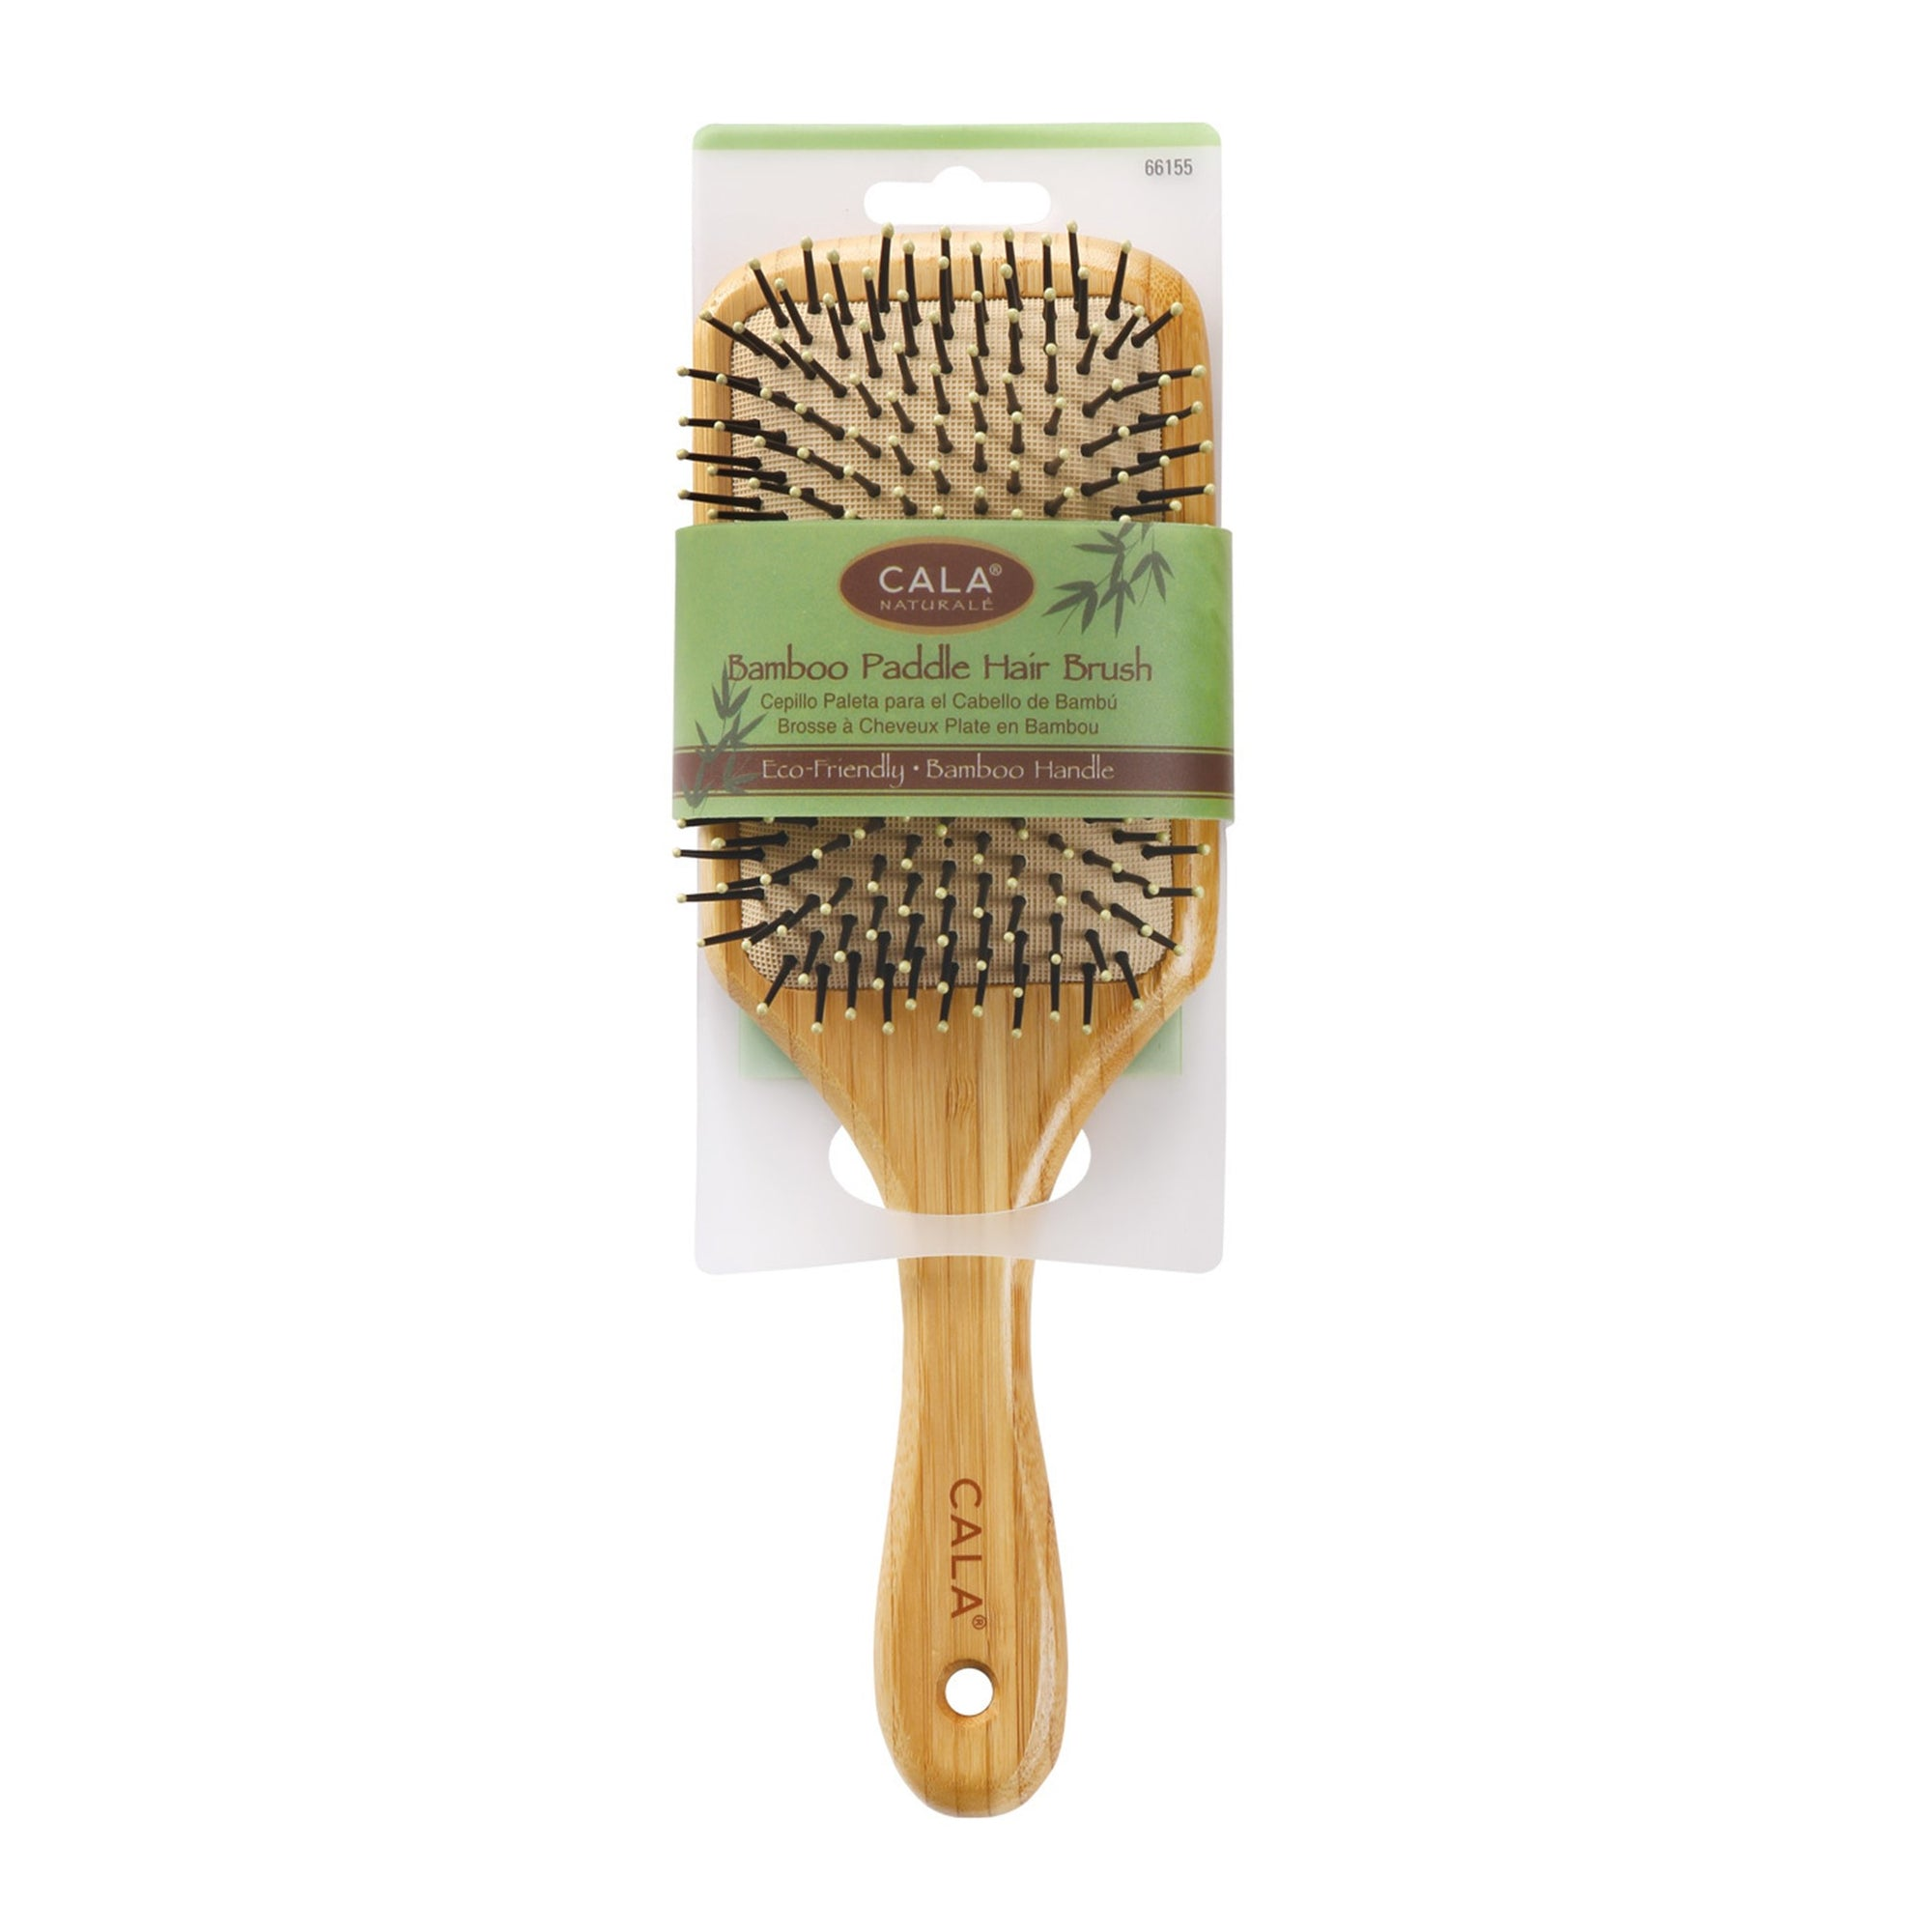 Cala Bamboo Paddle Hair Brush Large